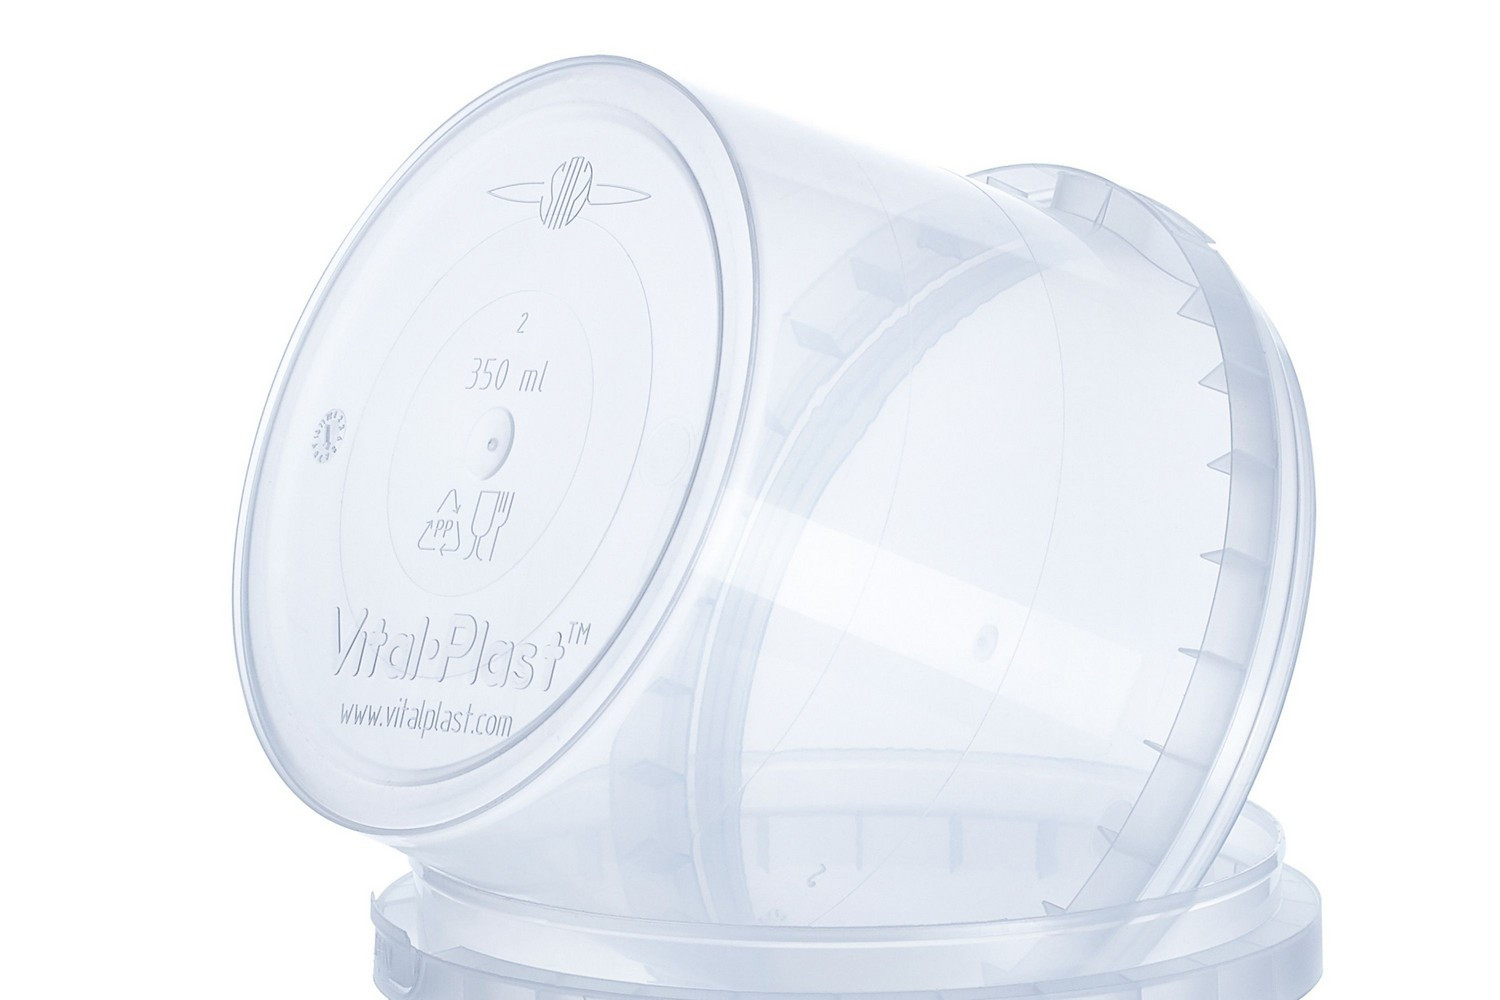 Vitalplast 350 ml food non-food containers with lid for restaraunts disposable